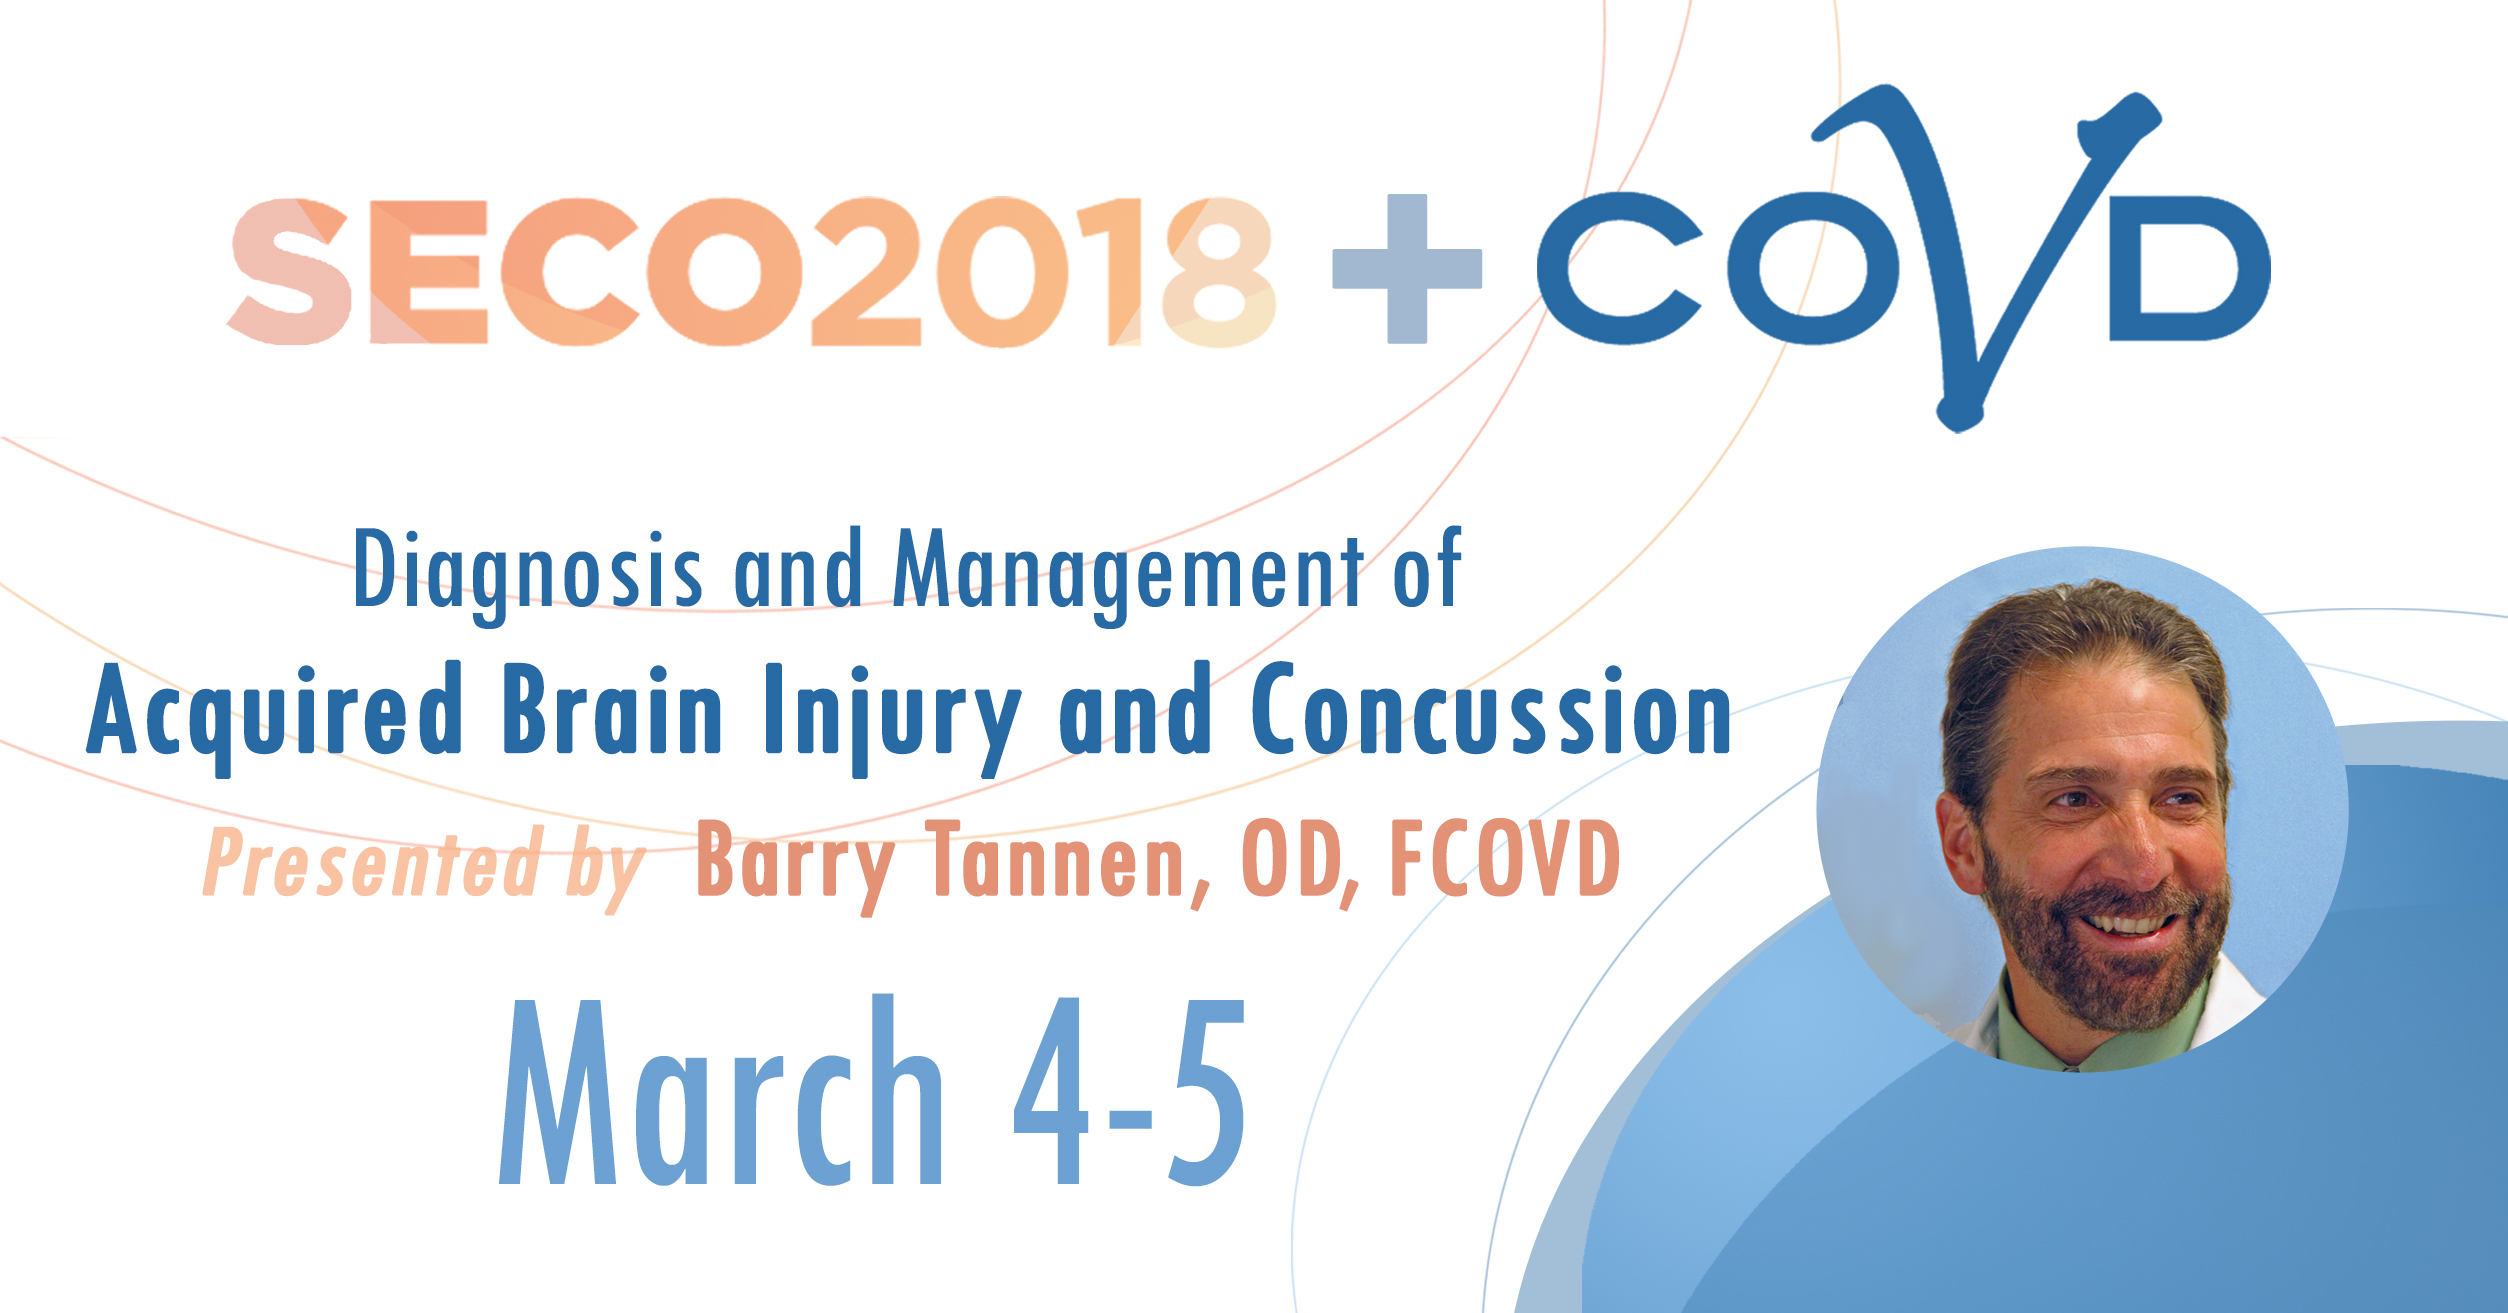 Diagnosis and Management of Acquired Brain Injury and Concussion: Applied Concepts for Primary Care and Vision Therapy Optometrists.  Presented by: Barry Tannen, OD, FCOVD